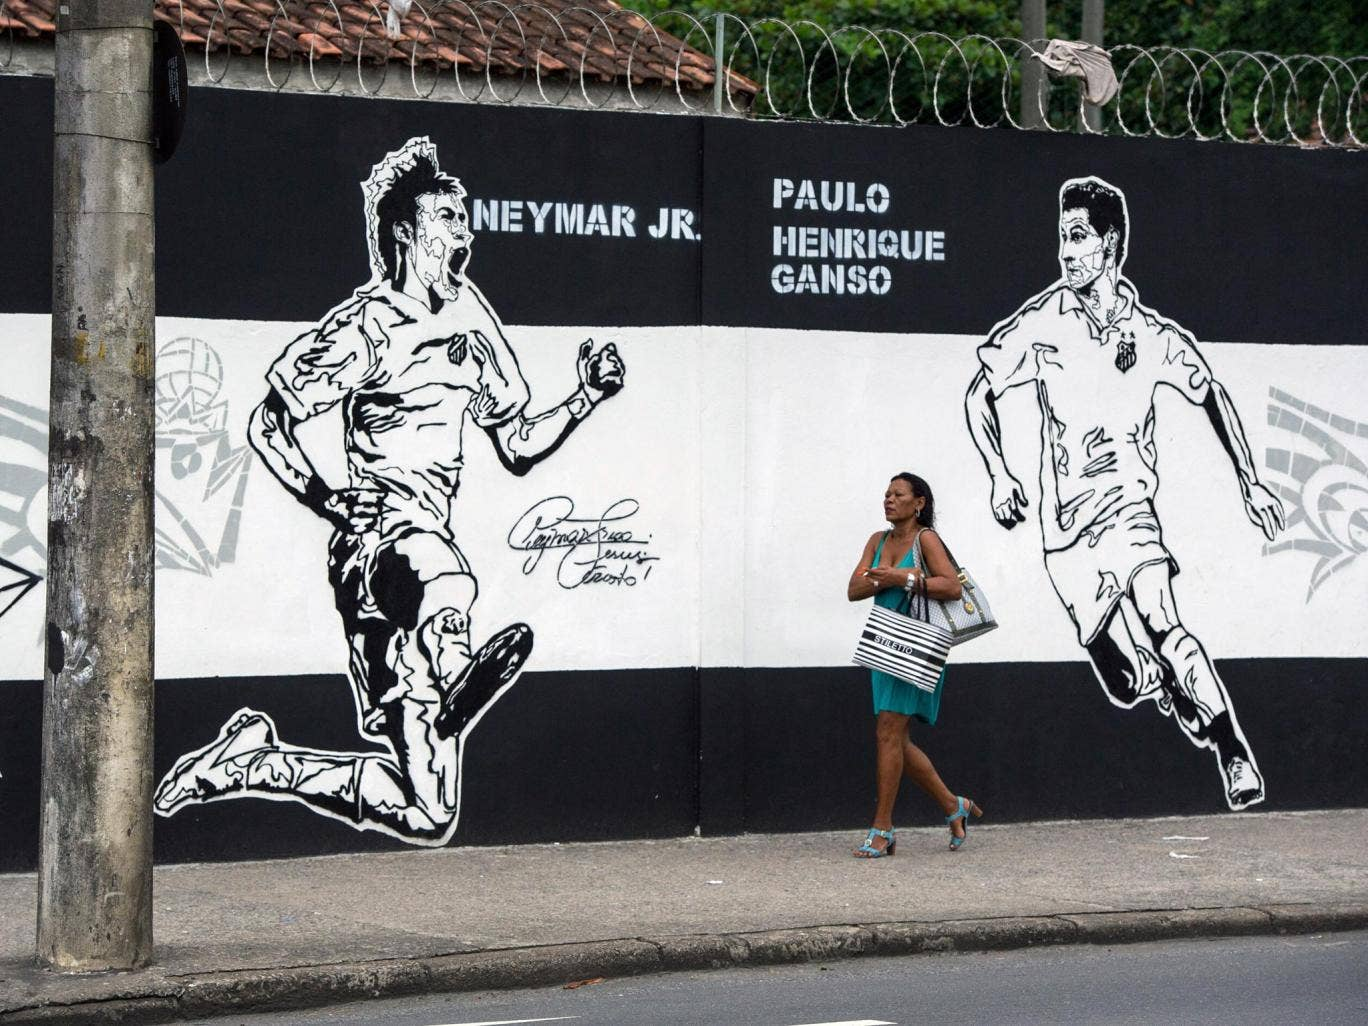 A mural depicting Neymar at the Santos training ground the young Brazilian star used to grace